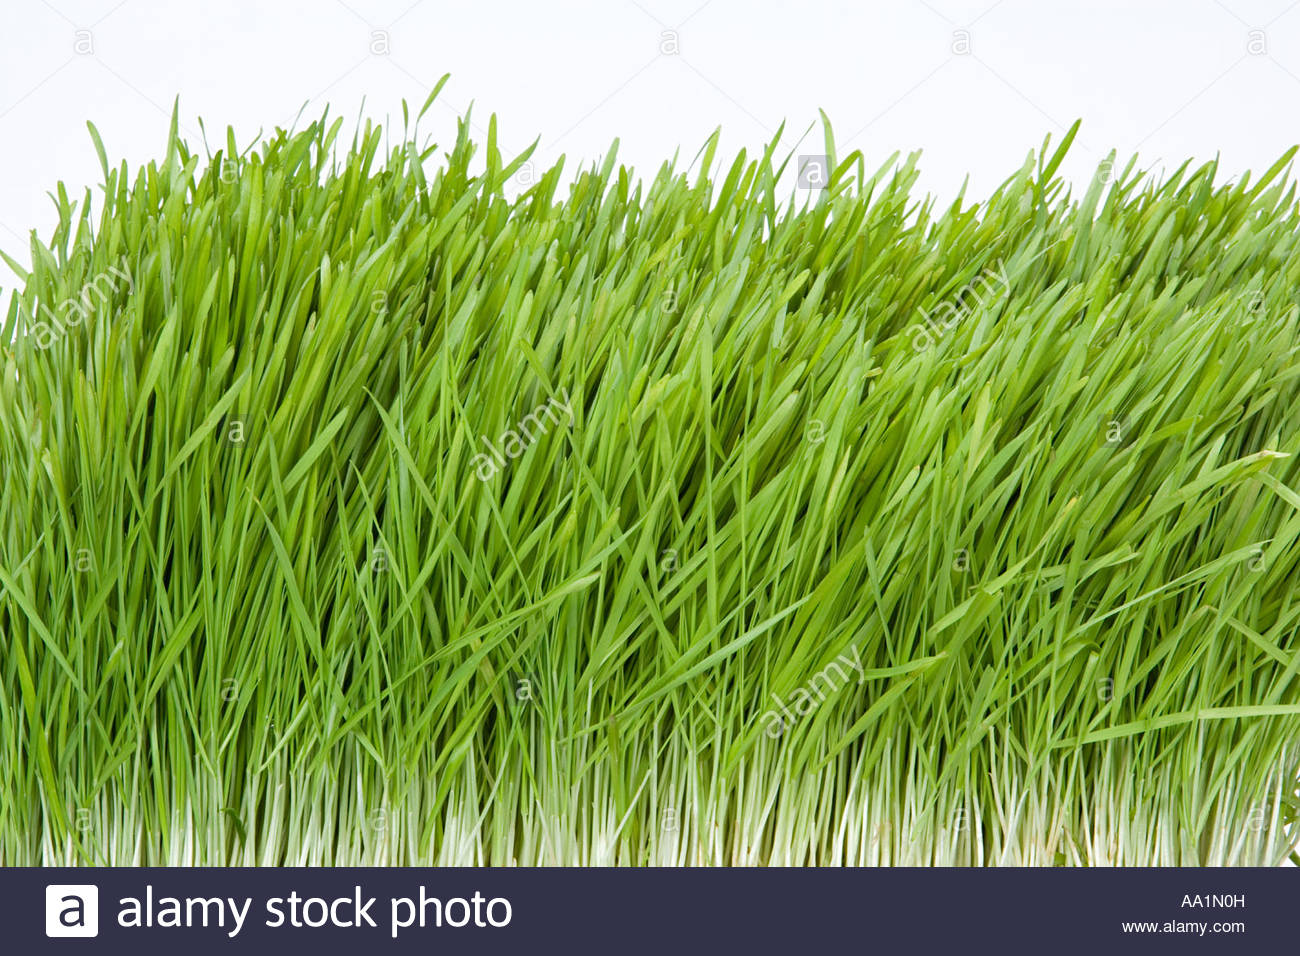 Grass - Stock Image